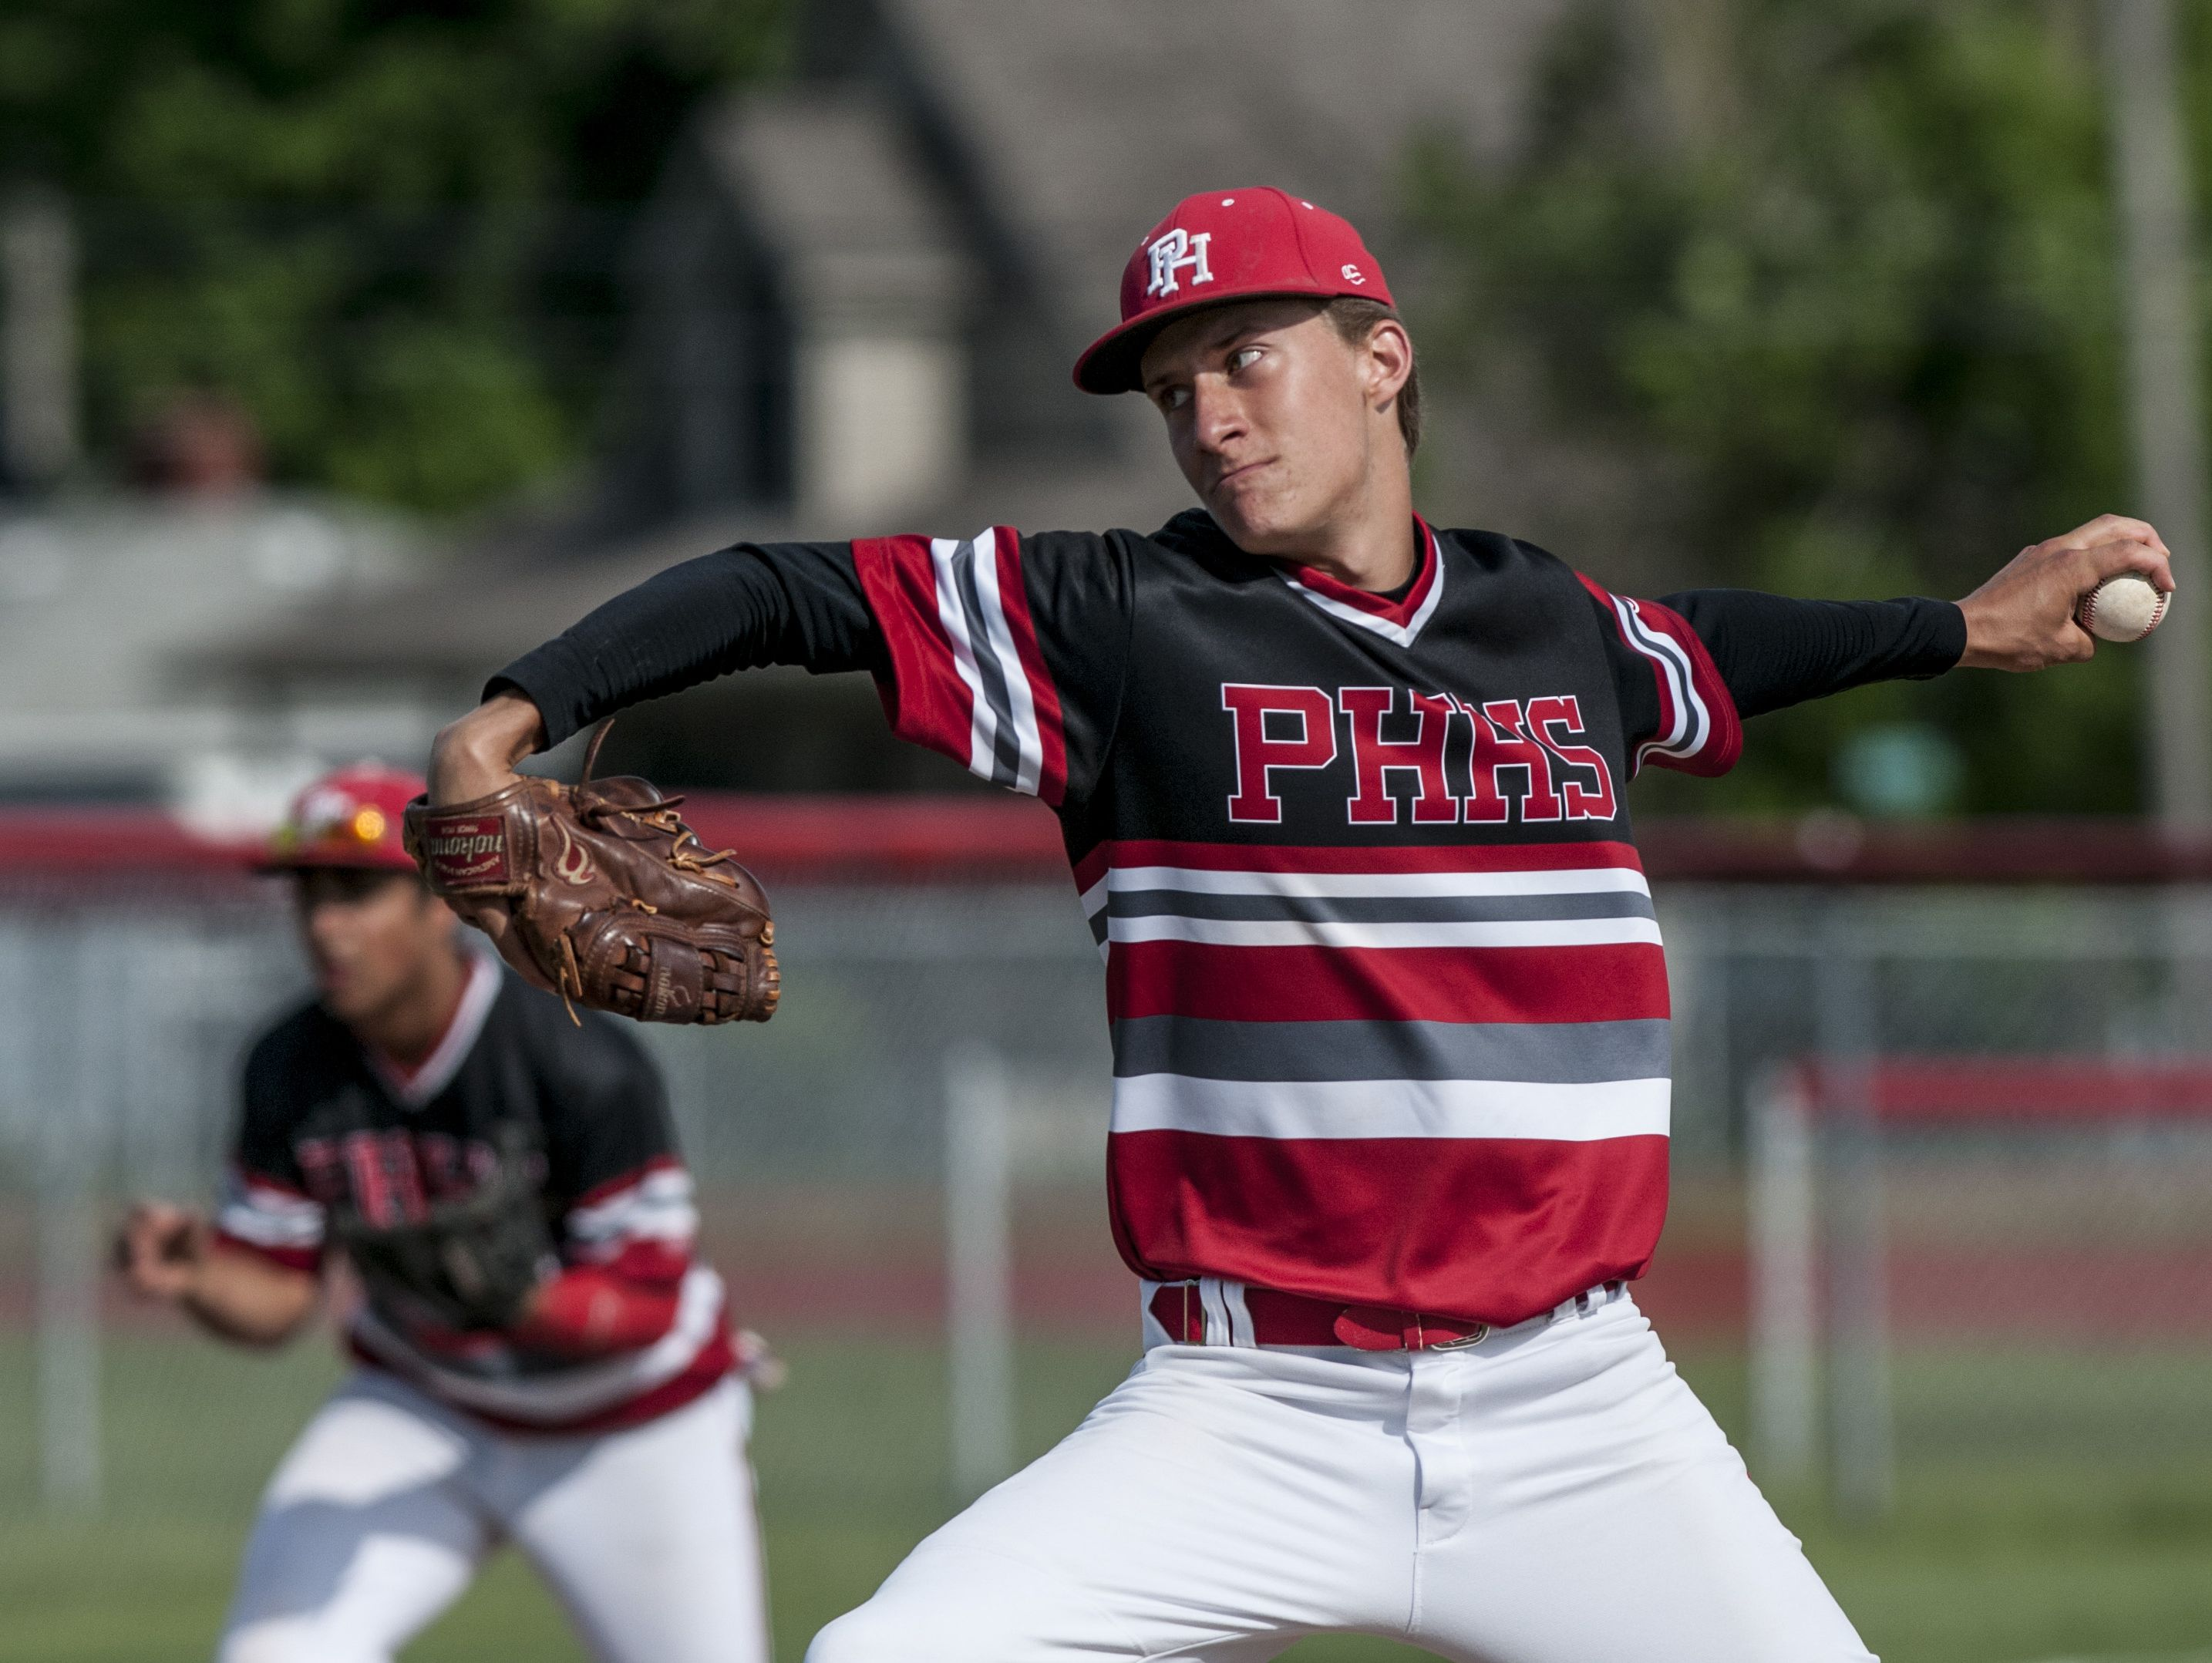 Port Huron's Brett Wagner throws a pitch during a baseball game Tuesday, May 31, 2016 at Port Huron High School.